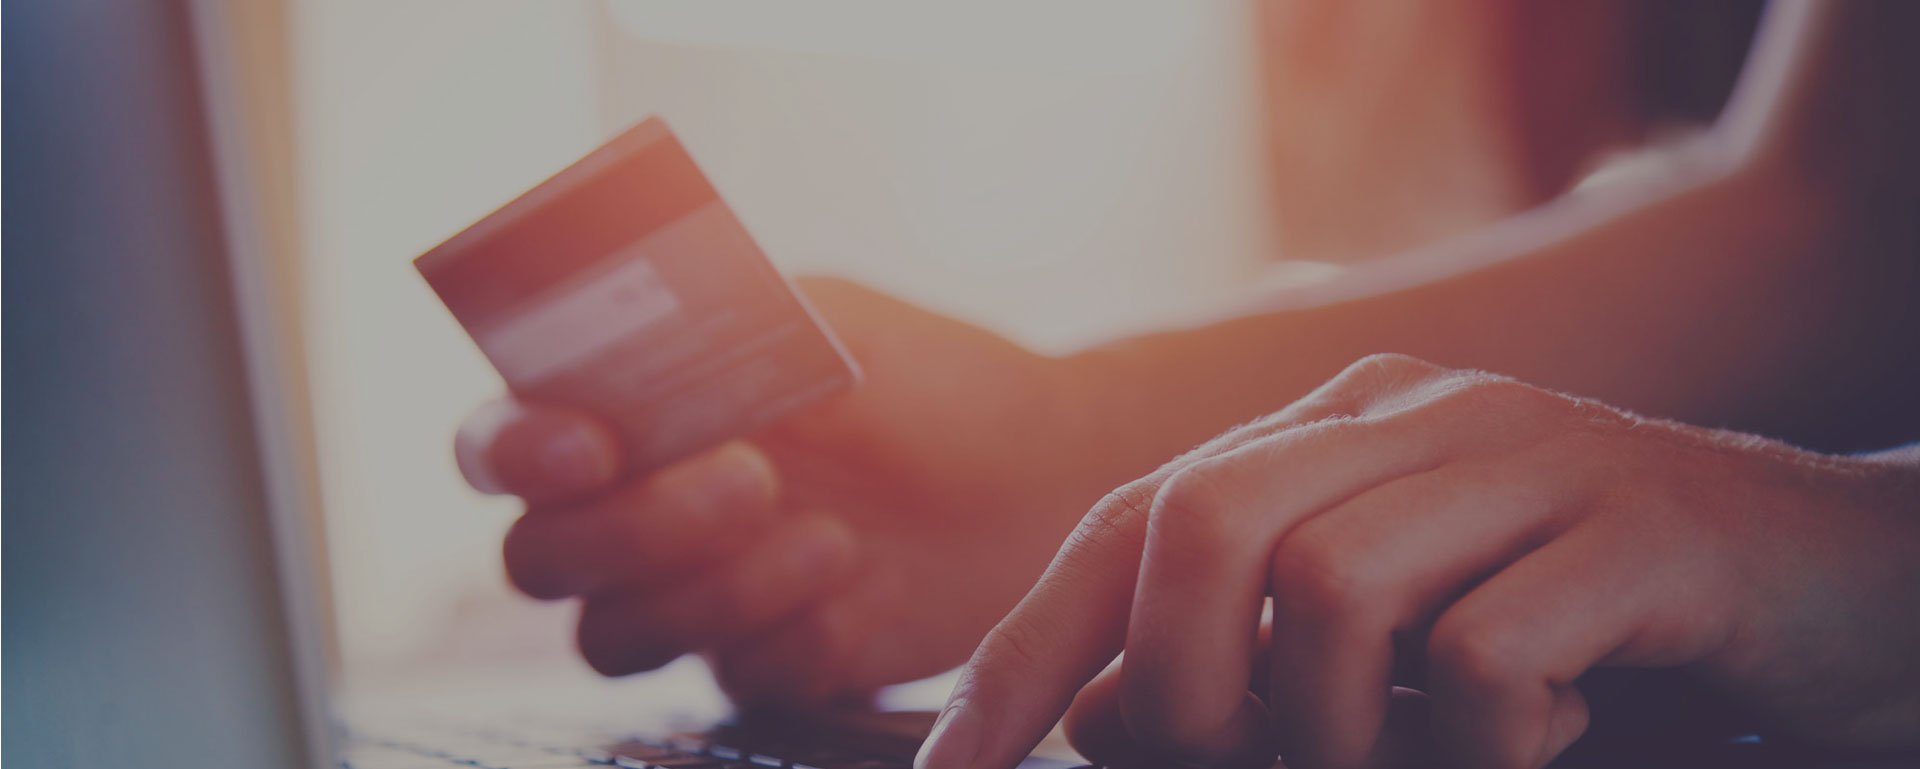 Using credit card to make online payment